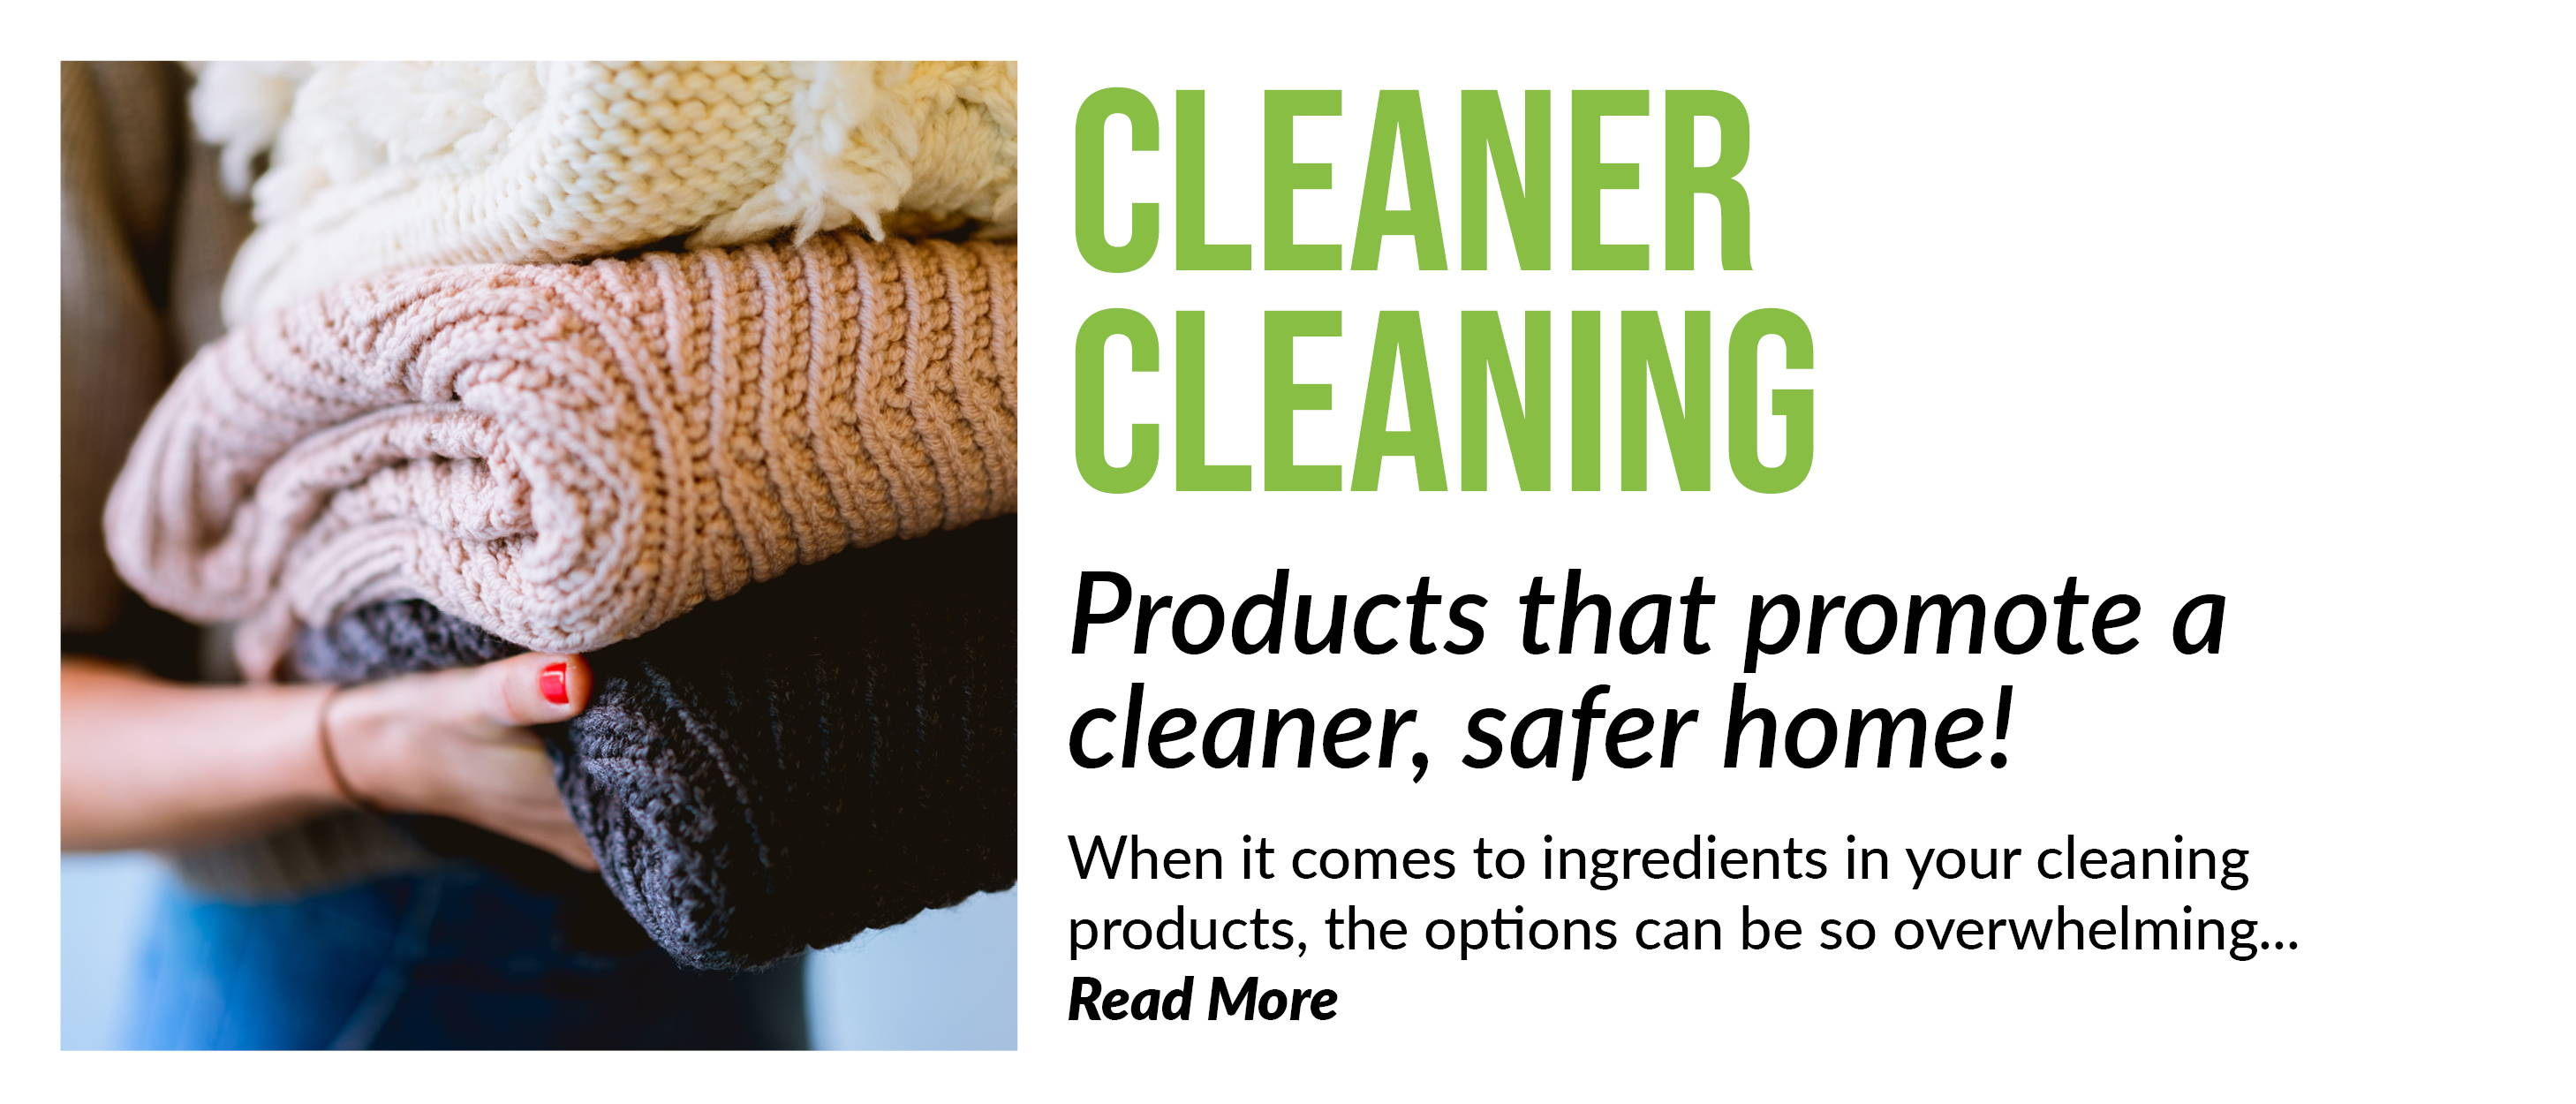 bio-based cleaning